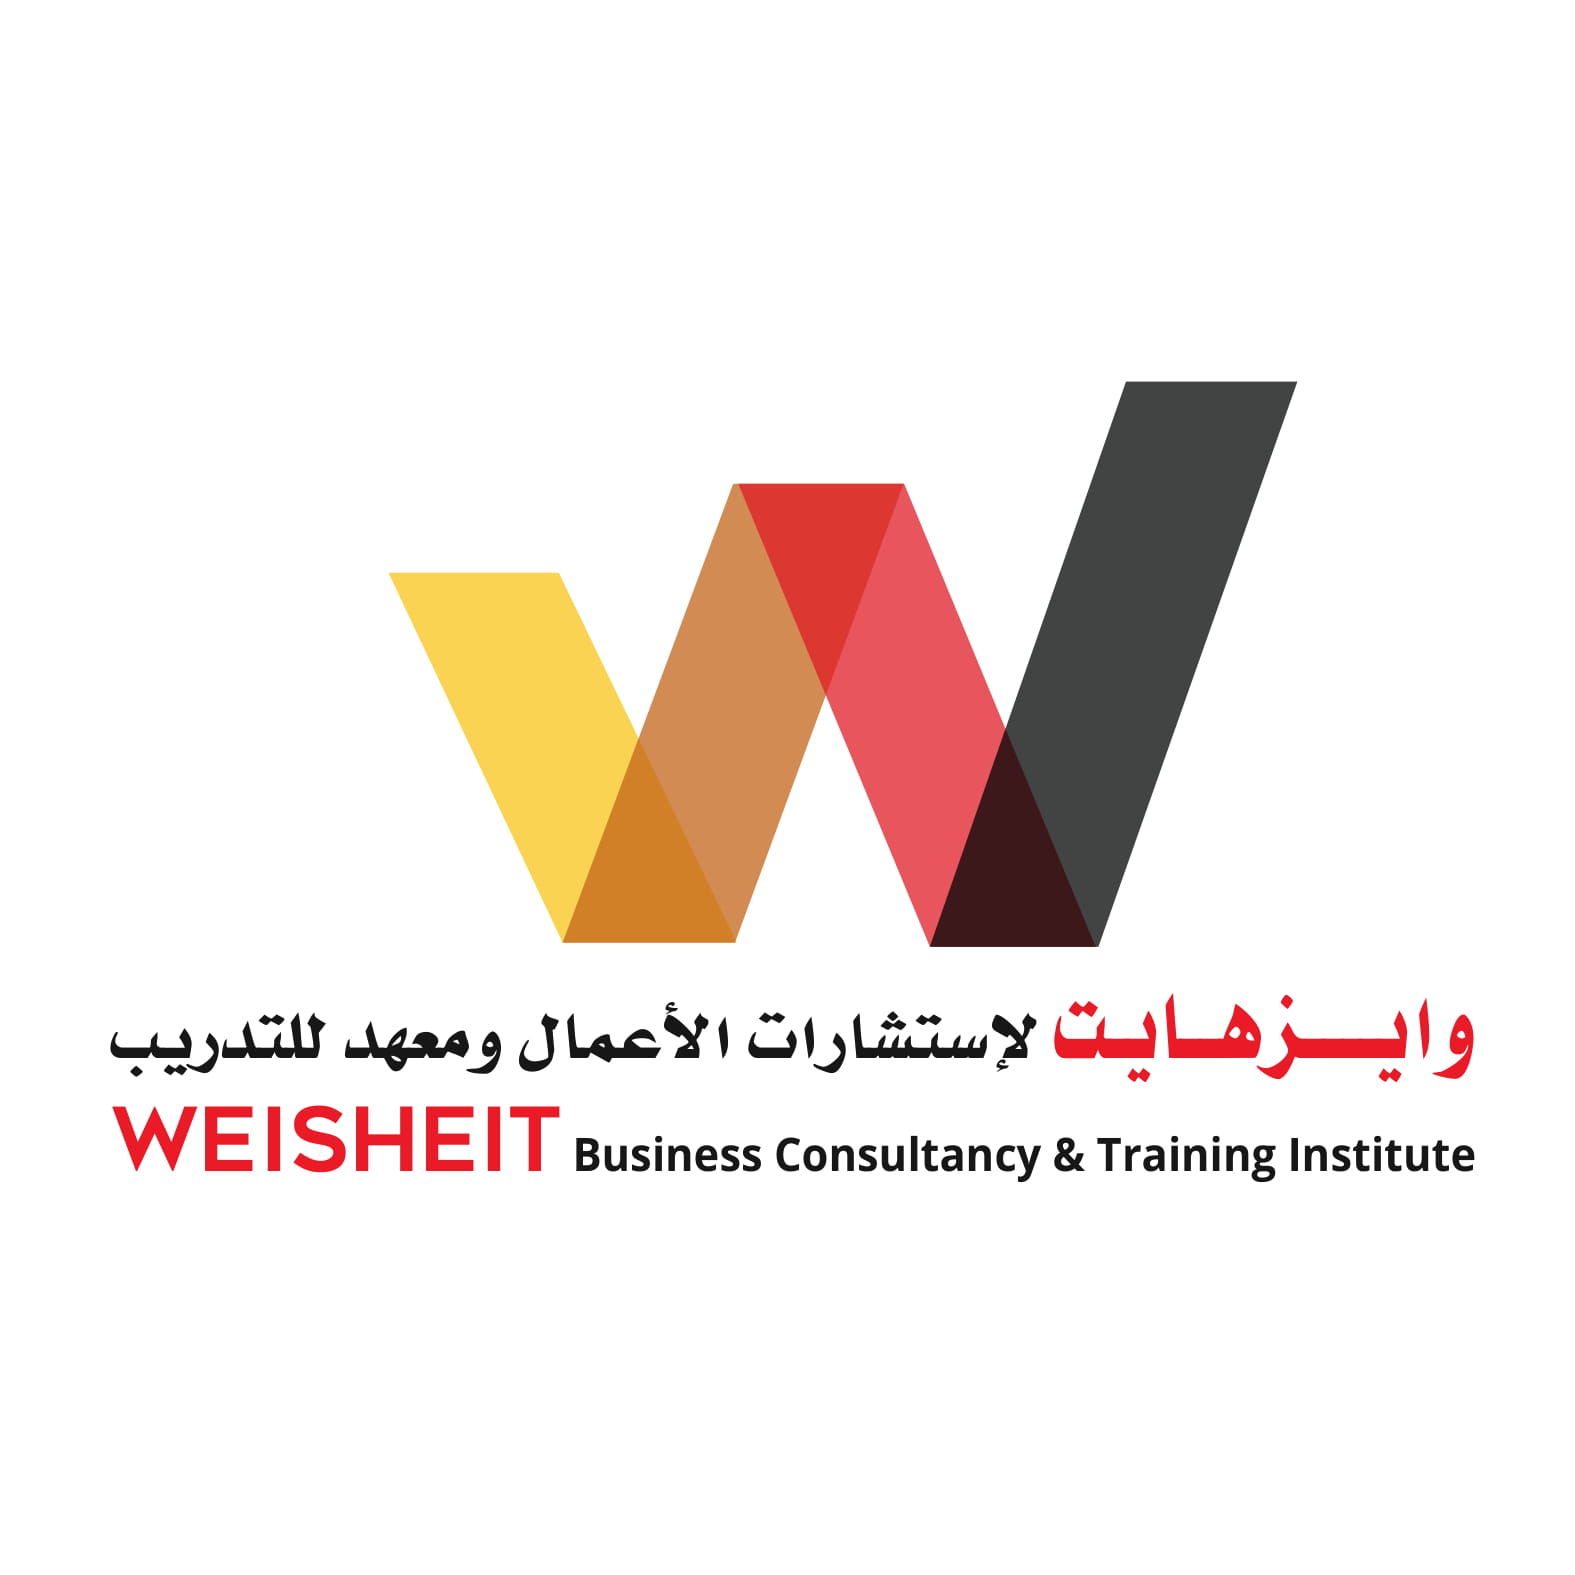 More about WEISHEIT Business Consultancy & Training Institute